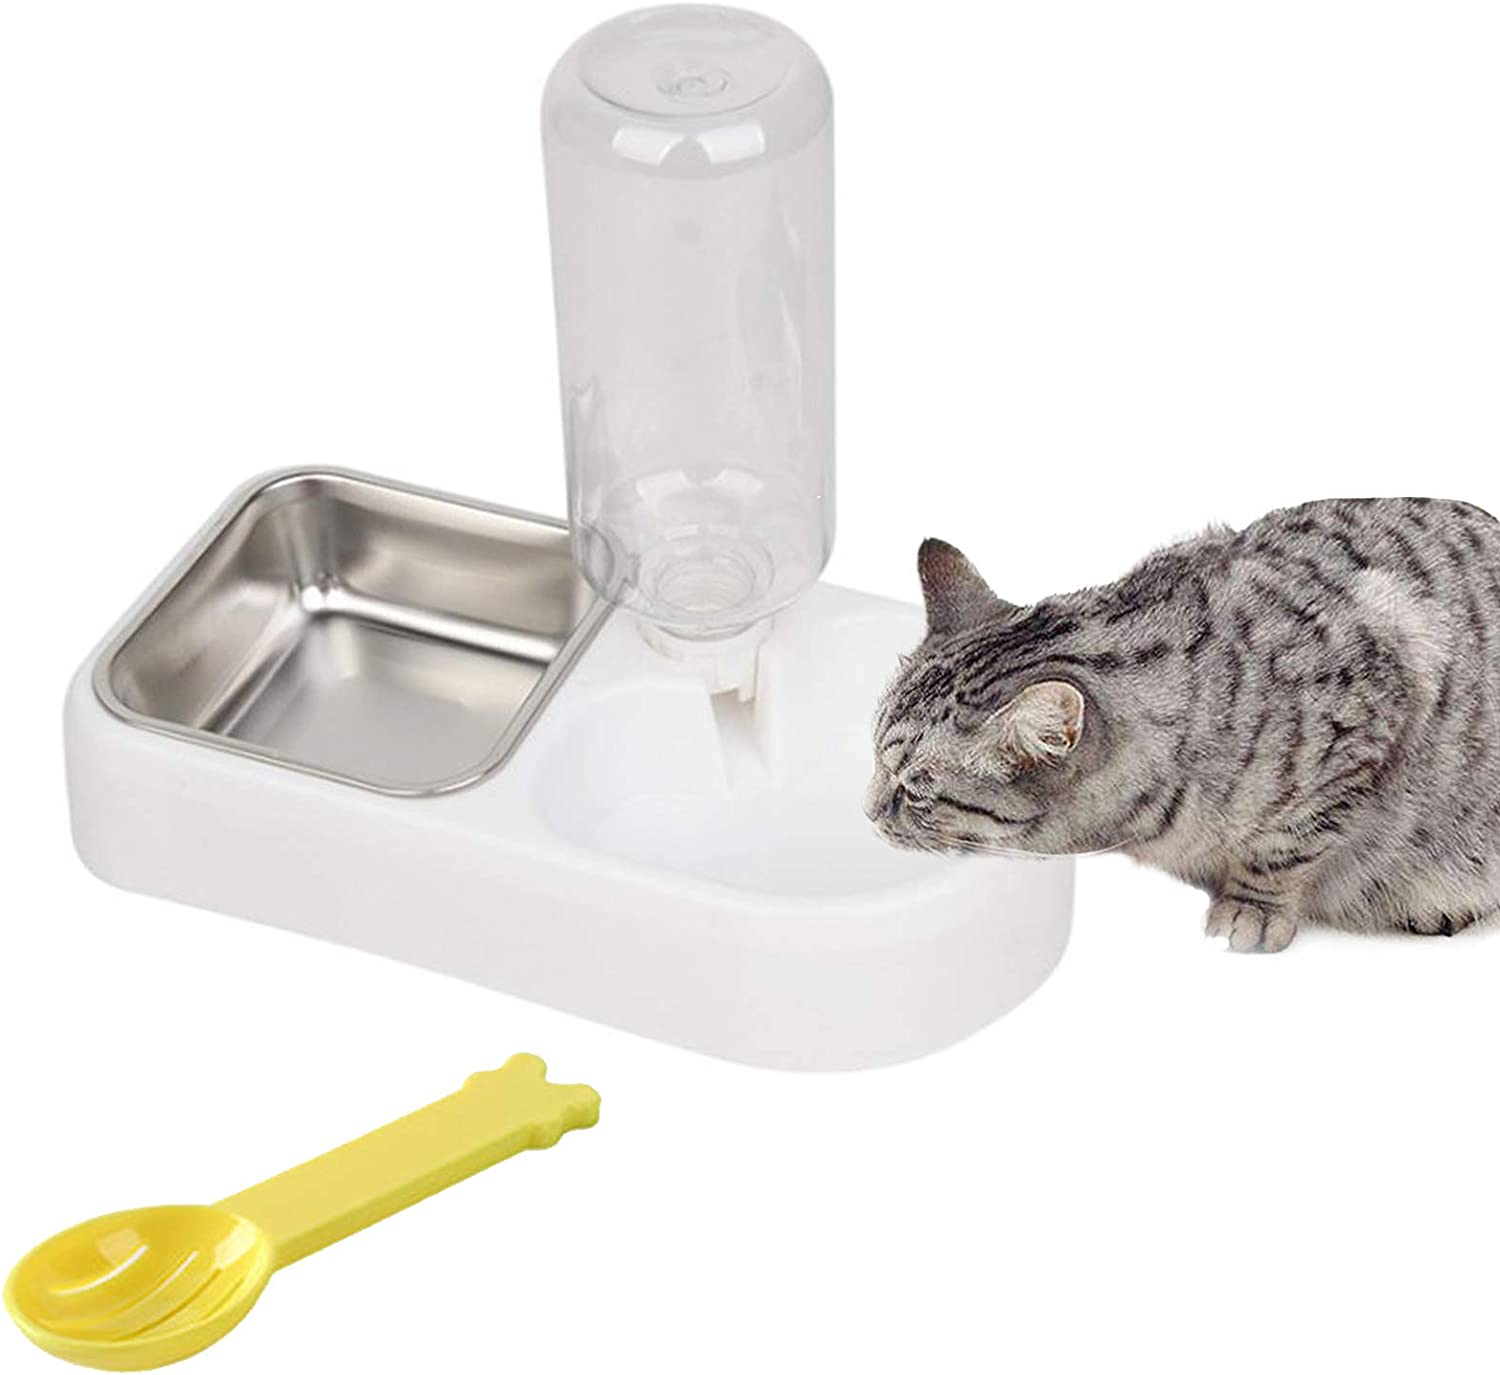 kathson Cage Dual Bowl, Pet Automatic Drinking Fountain Dispenser,Detachable Stainless Steel Feeder Hanging Bowls Dog Food Spoon & Water Feeder Bowls for Small Dogs and Cats